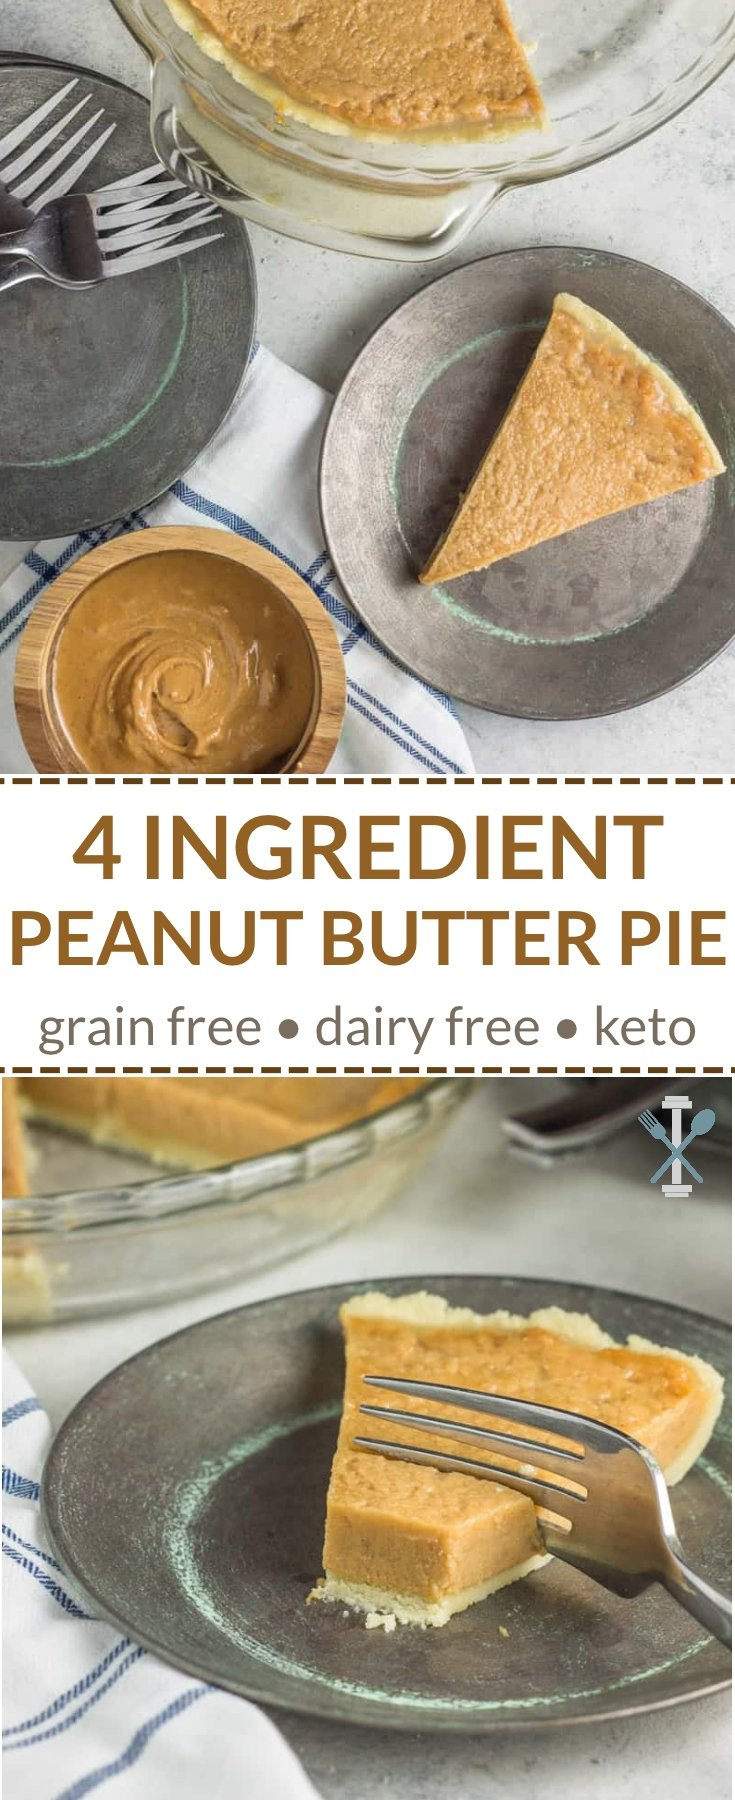 This keto, no-bake dessert is made with just 4 simple ingredients, including King Arthur Almond Flour. Grain free and dairy free. No sweetener required. #ad